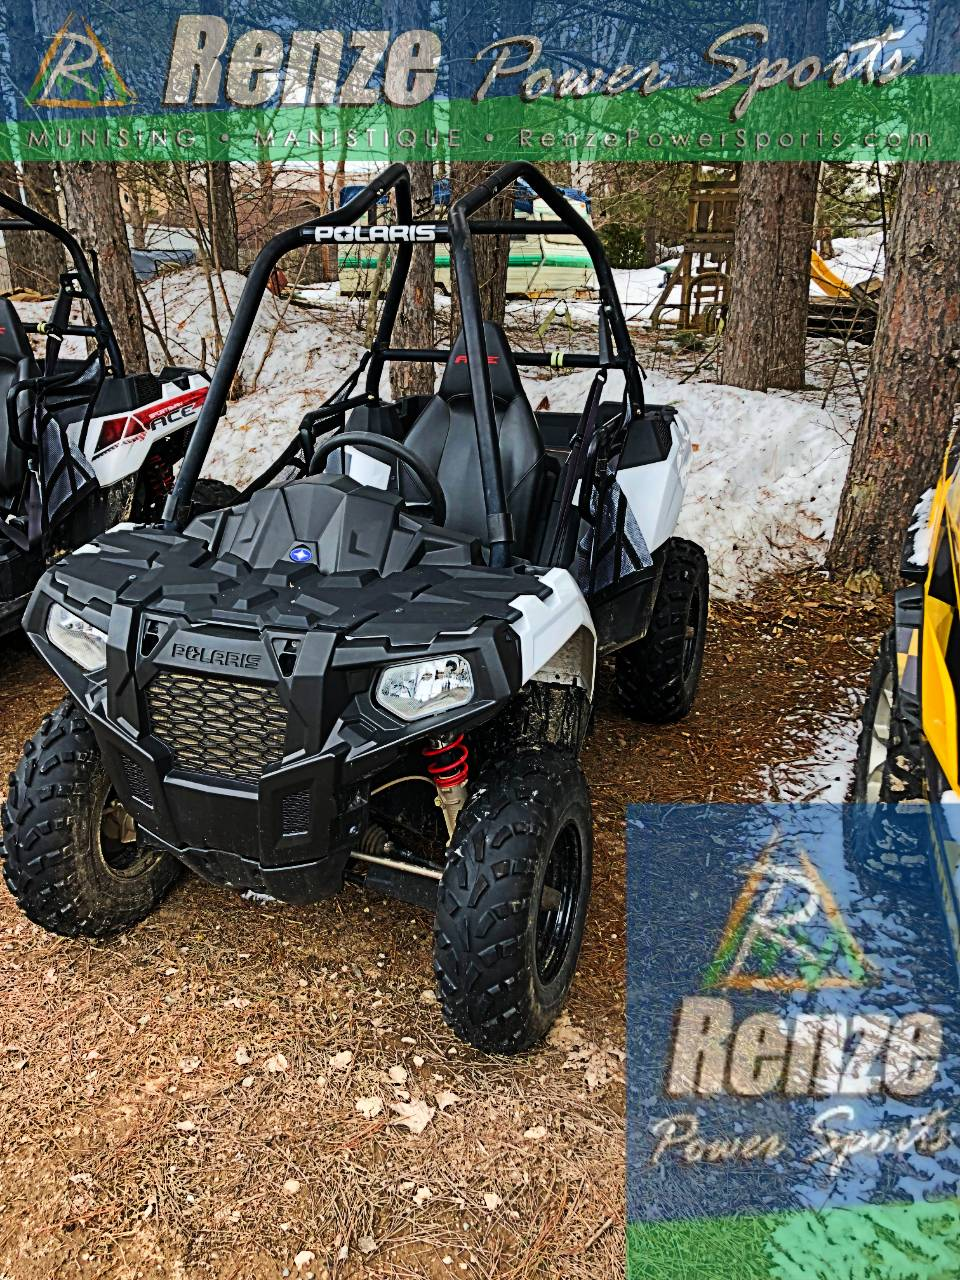 2014 Polaris Sportsman Ace for sale 107114